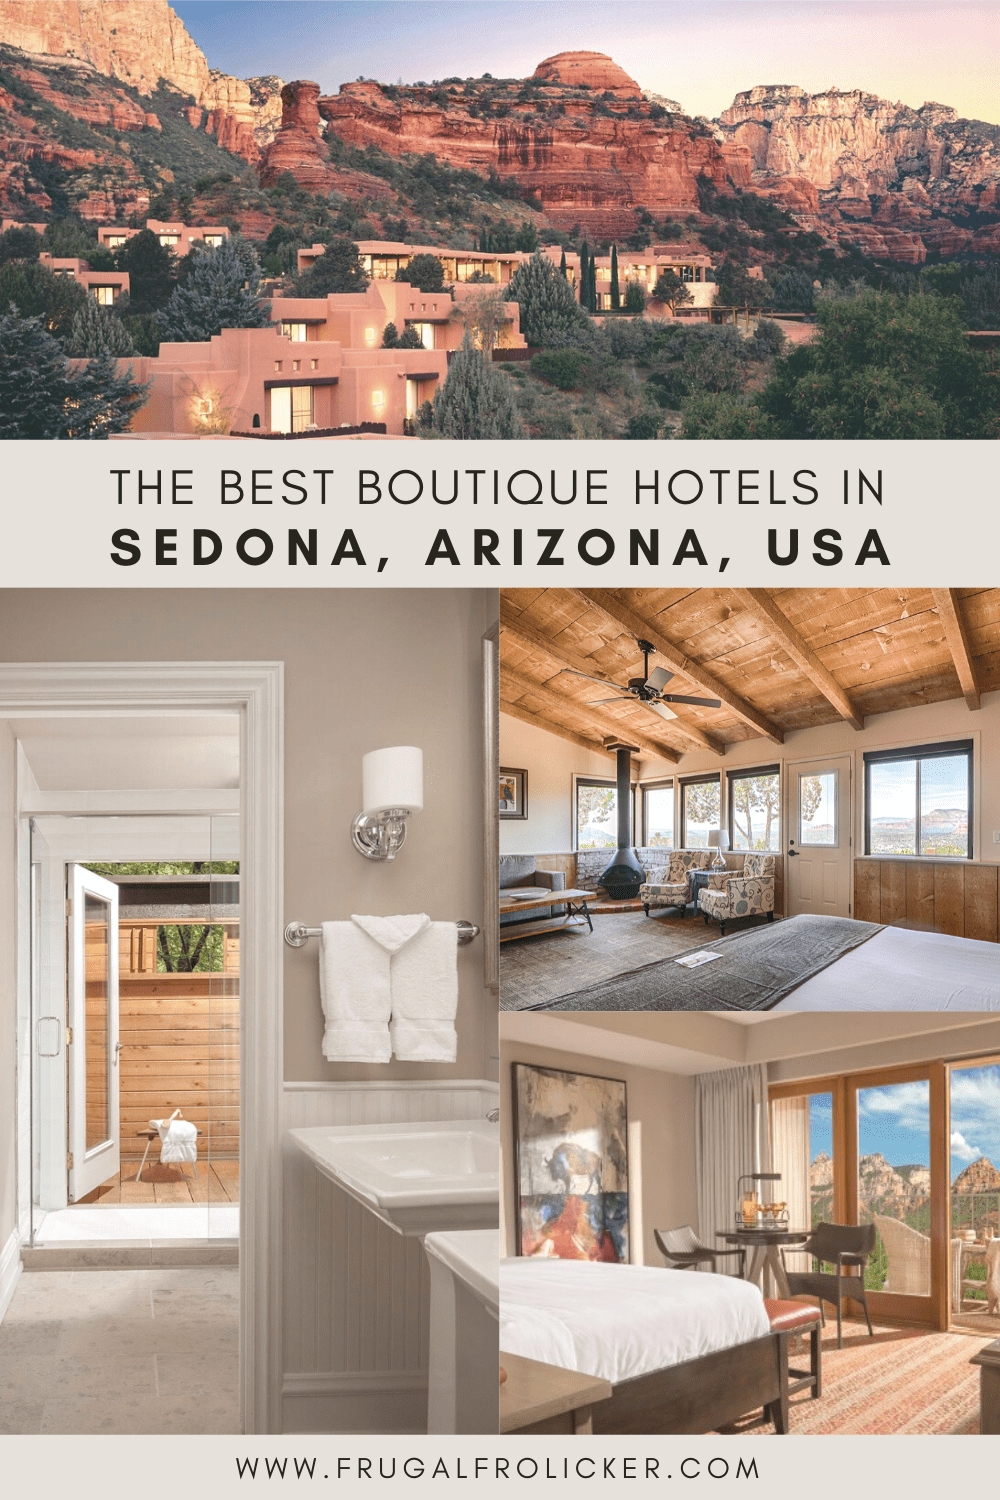 The Best Boutique Hotels in Sedona, Arizona